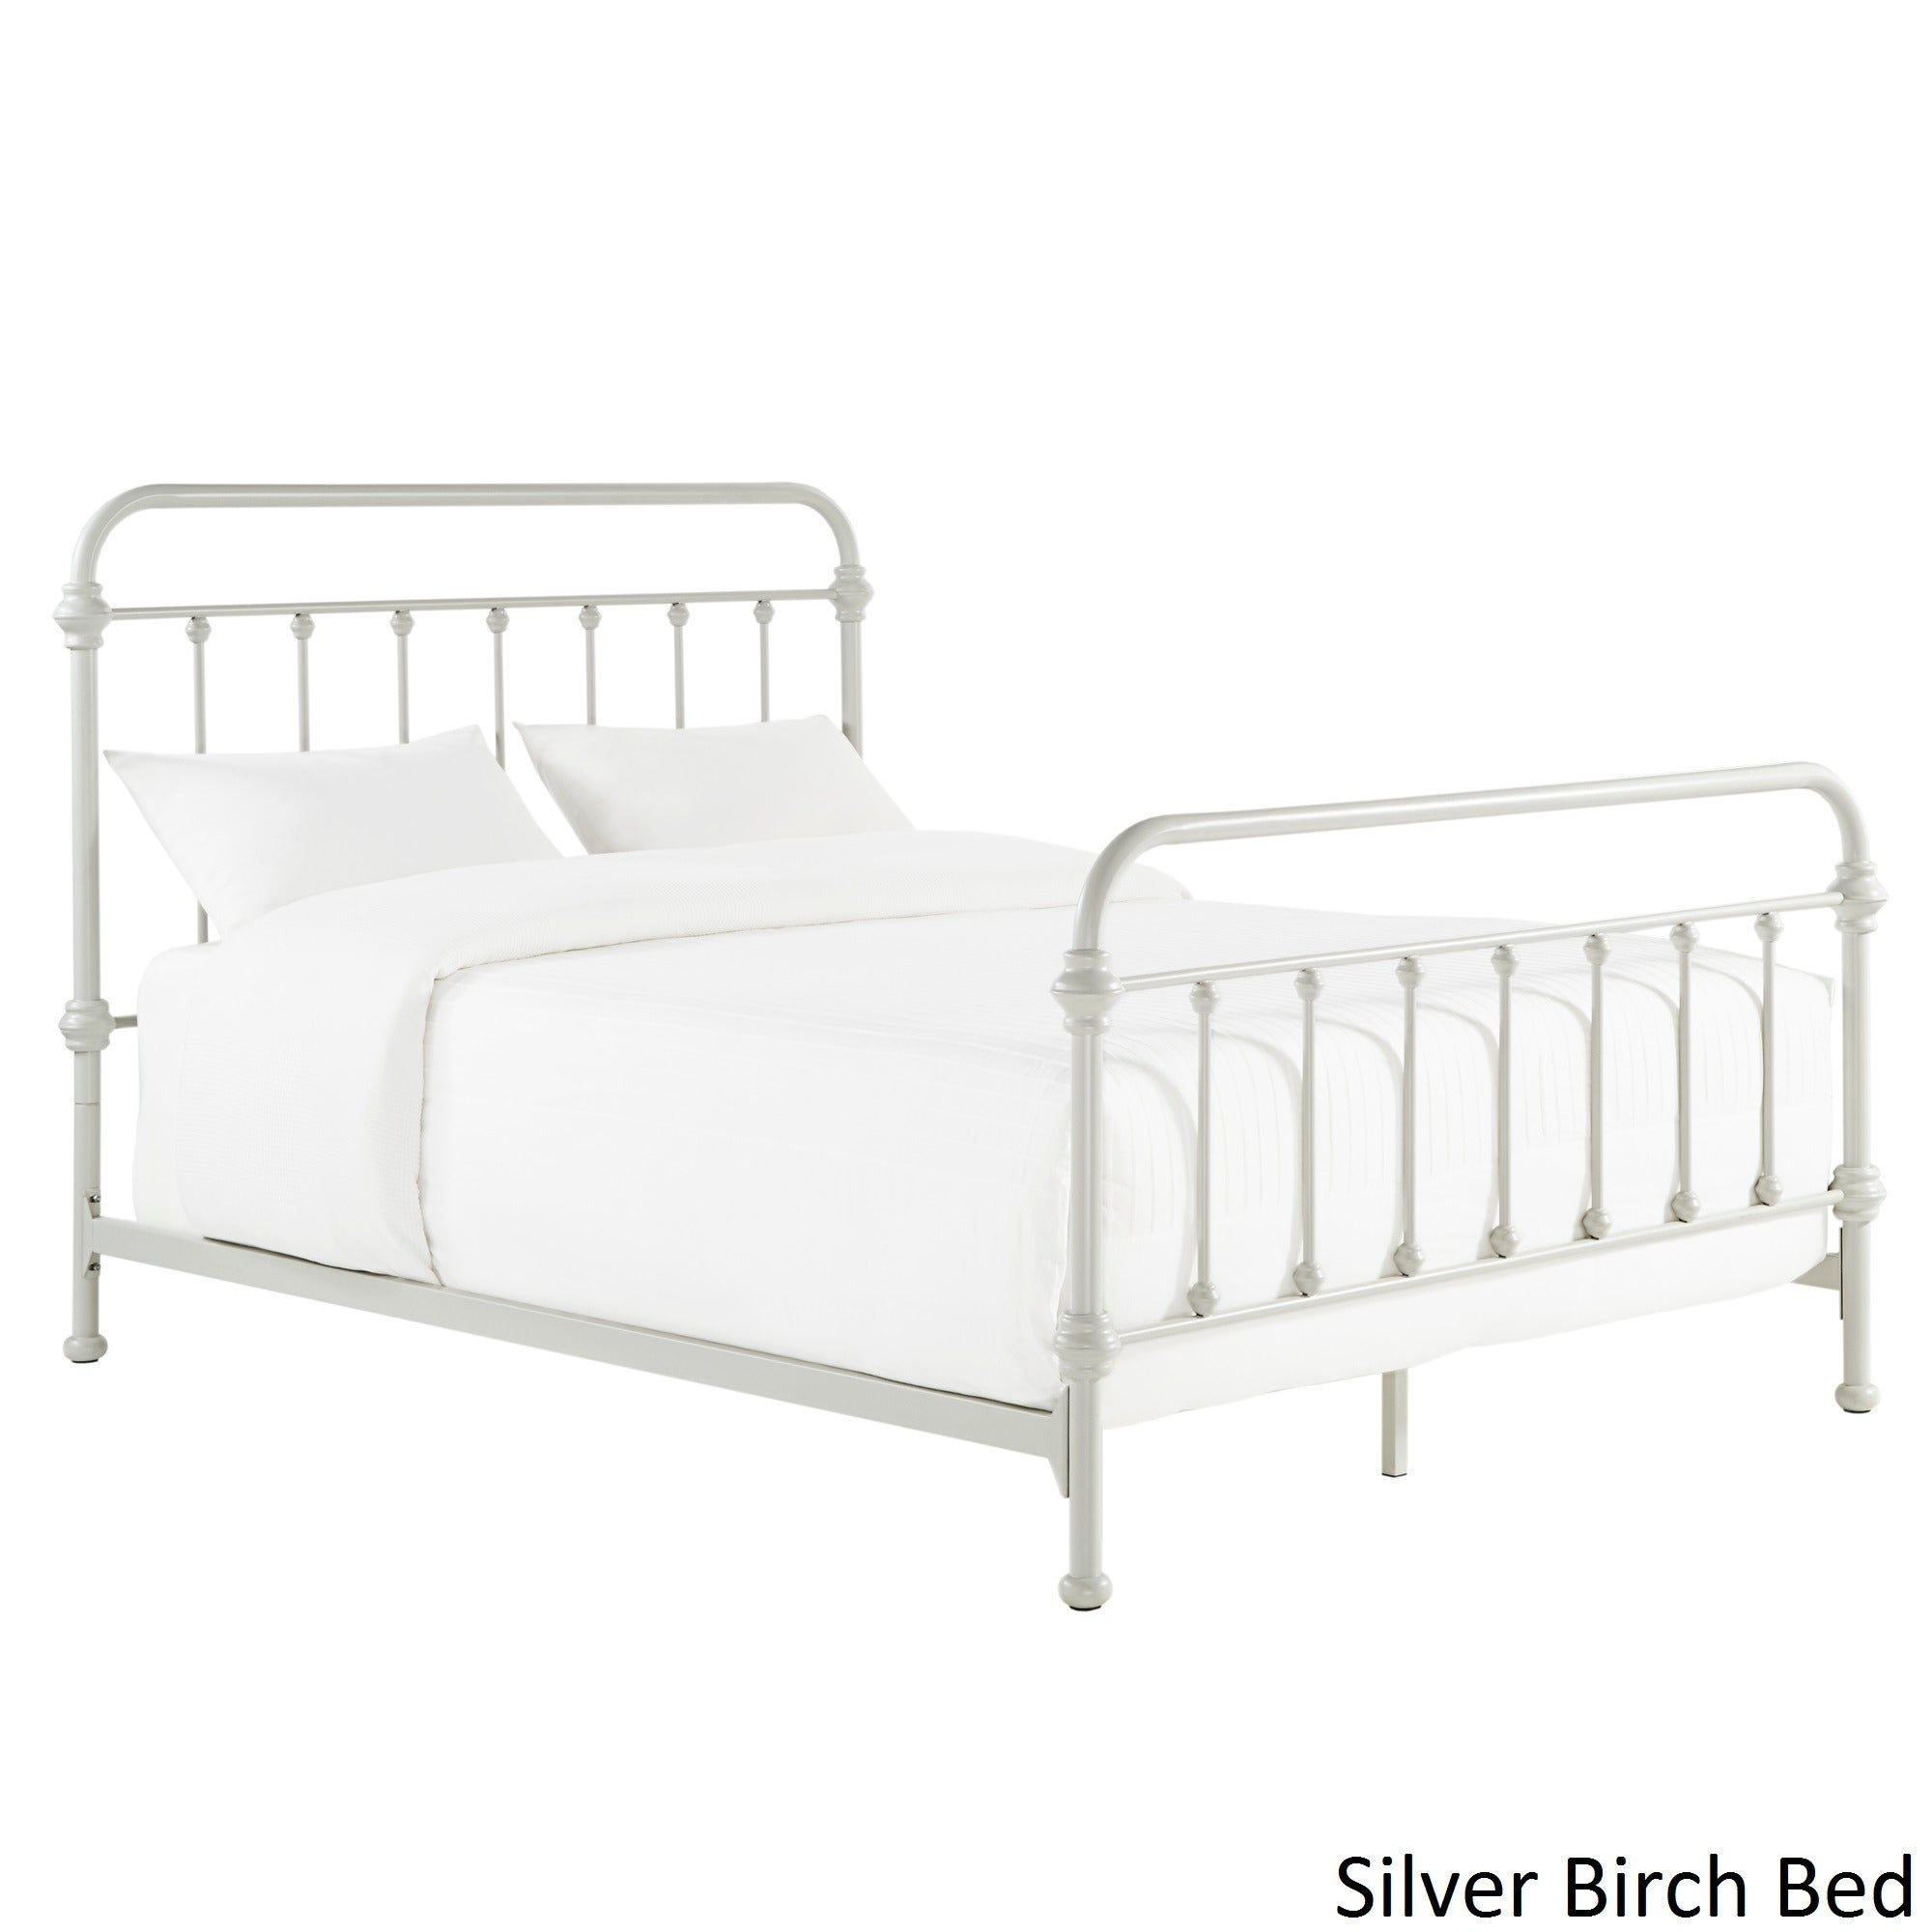 Giselle II Queen Metal Bed iNSPIRE Q Modern - Free Shipping Today -  Overstock.com - 21014219